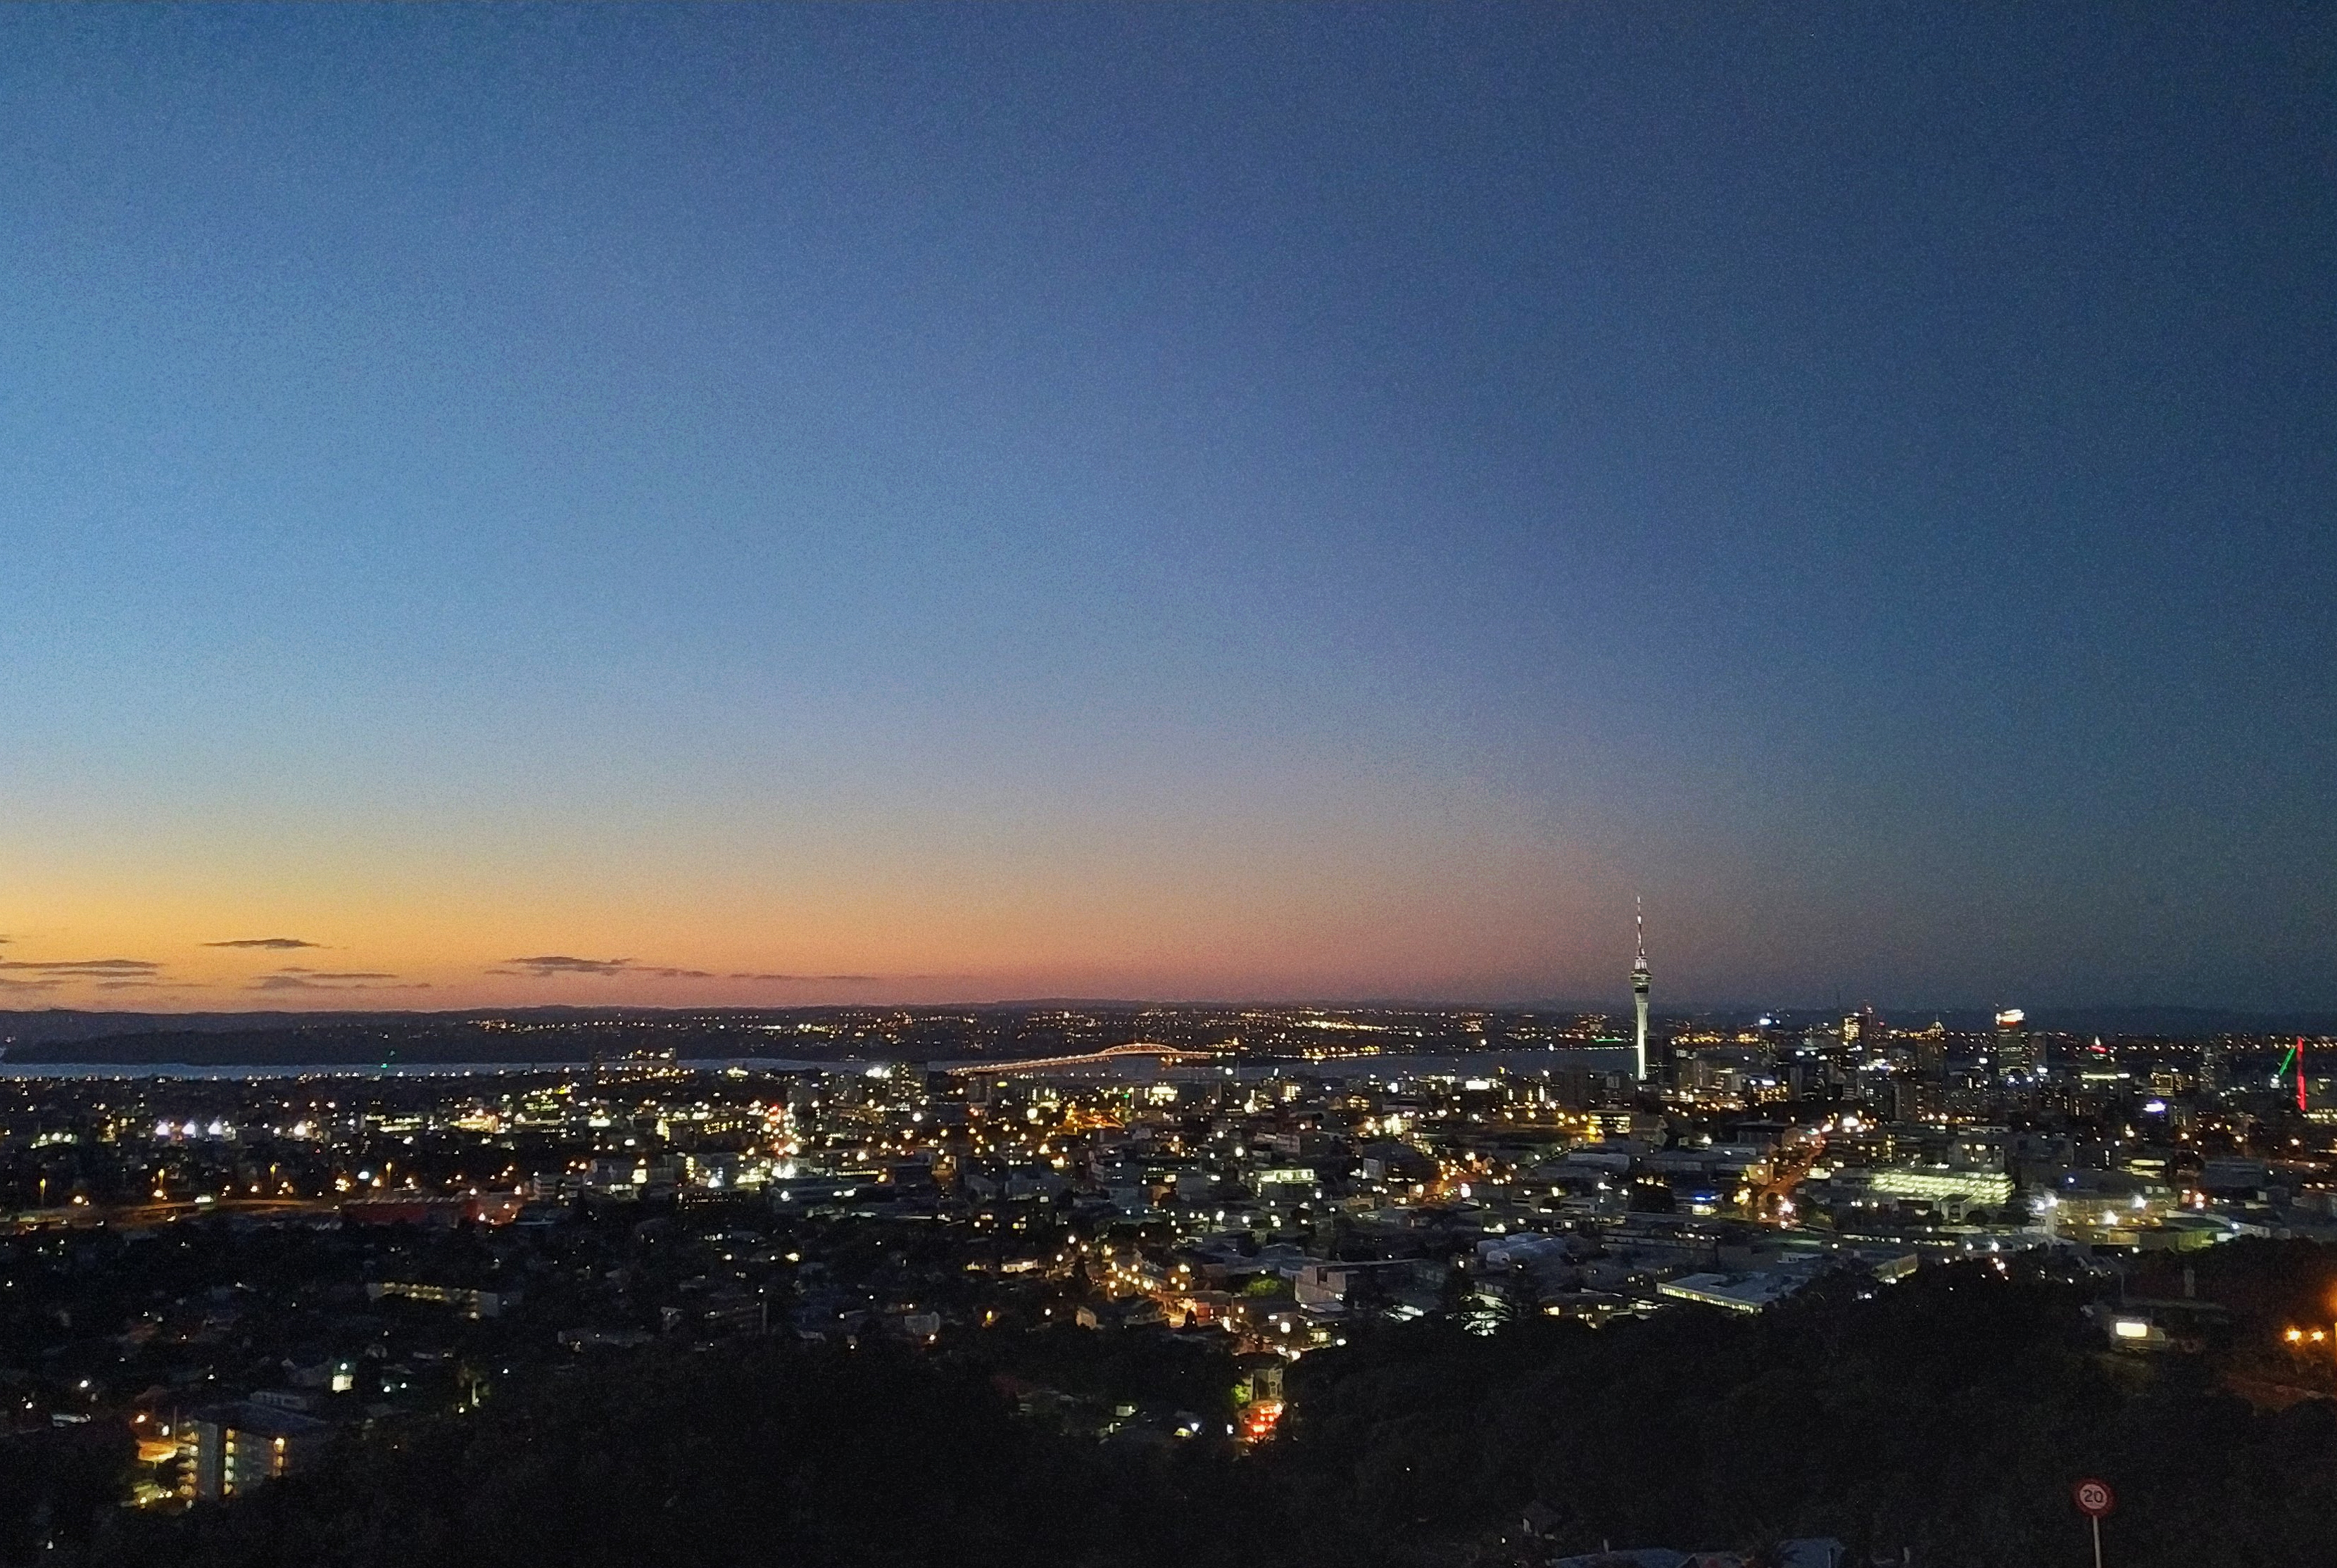 Overlooking Auckland, New Zealand from Mt. Eden during sunset